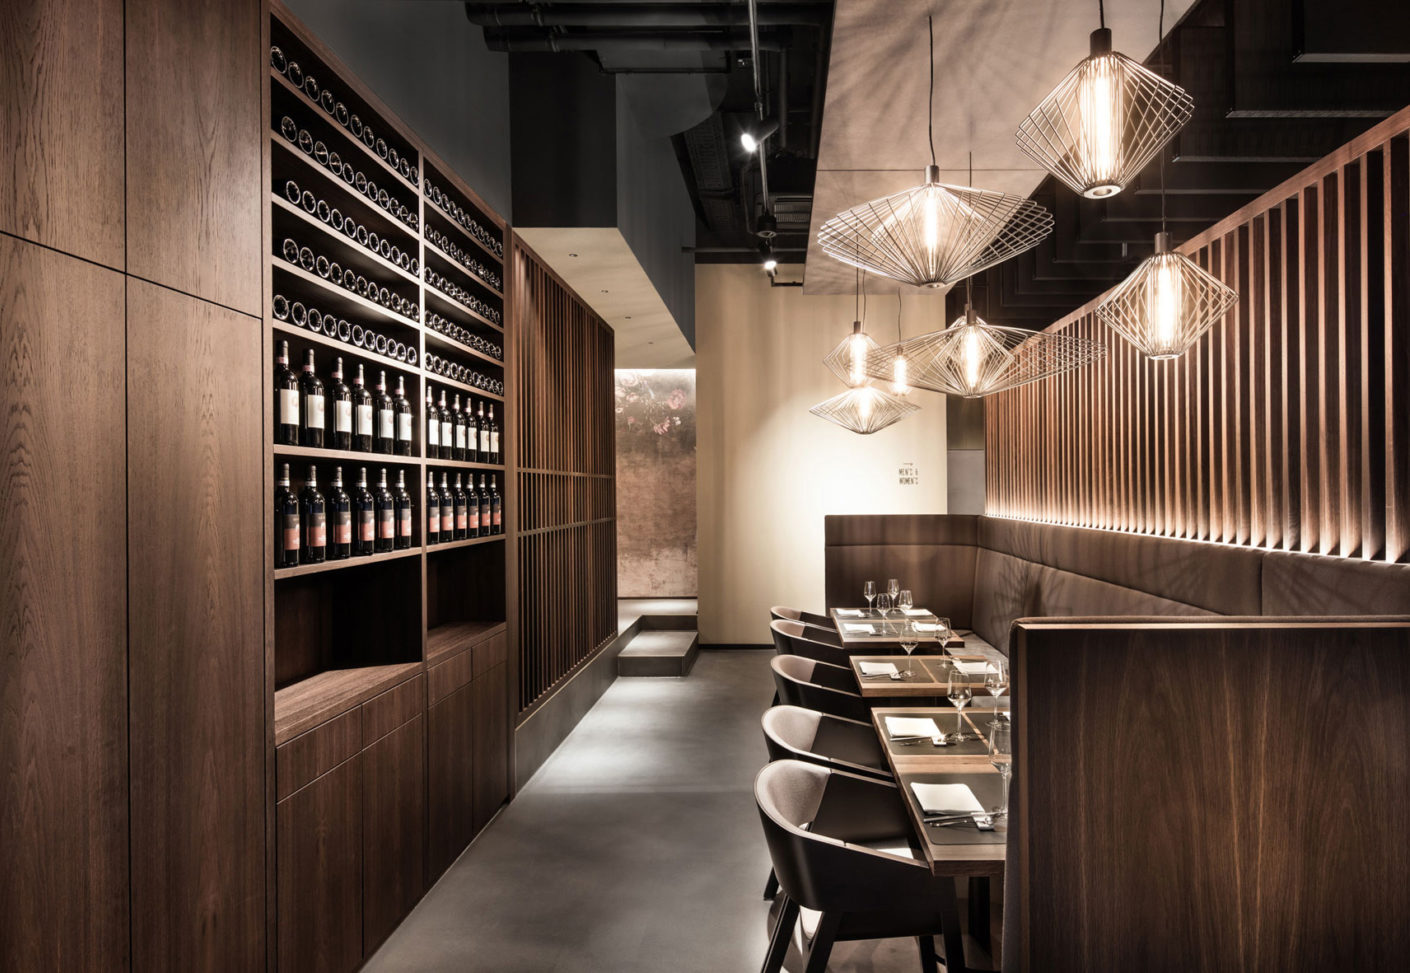 The soundproofed seating areas near the wine cellar offer a further possibility to retreat.